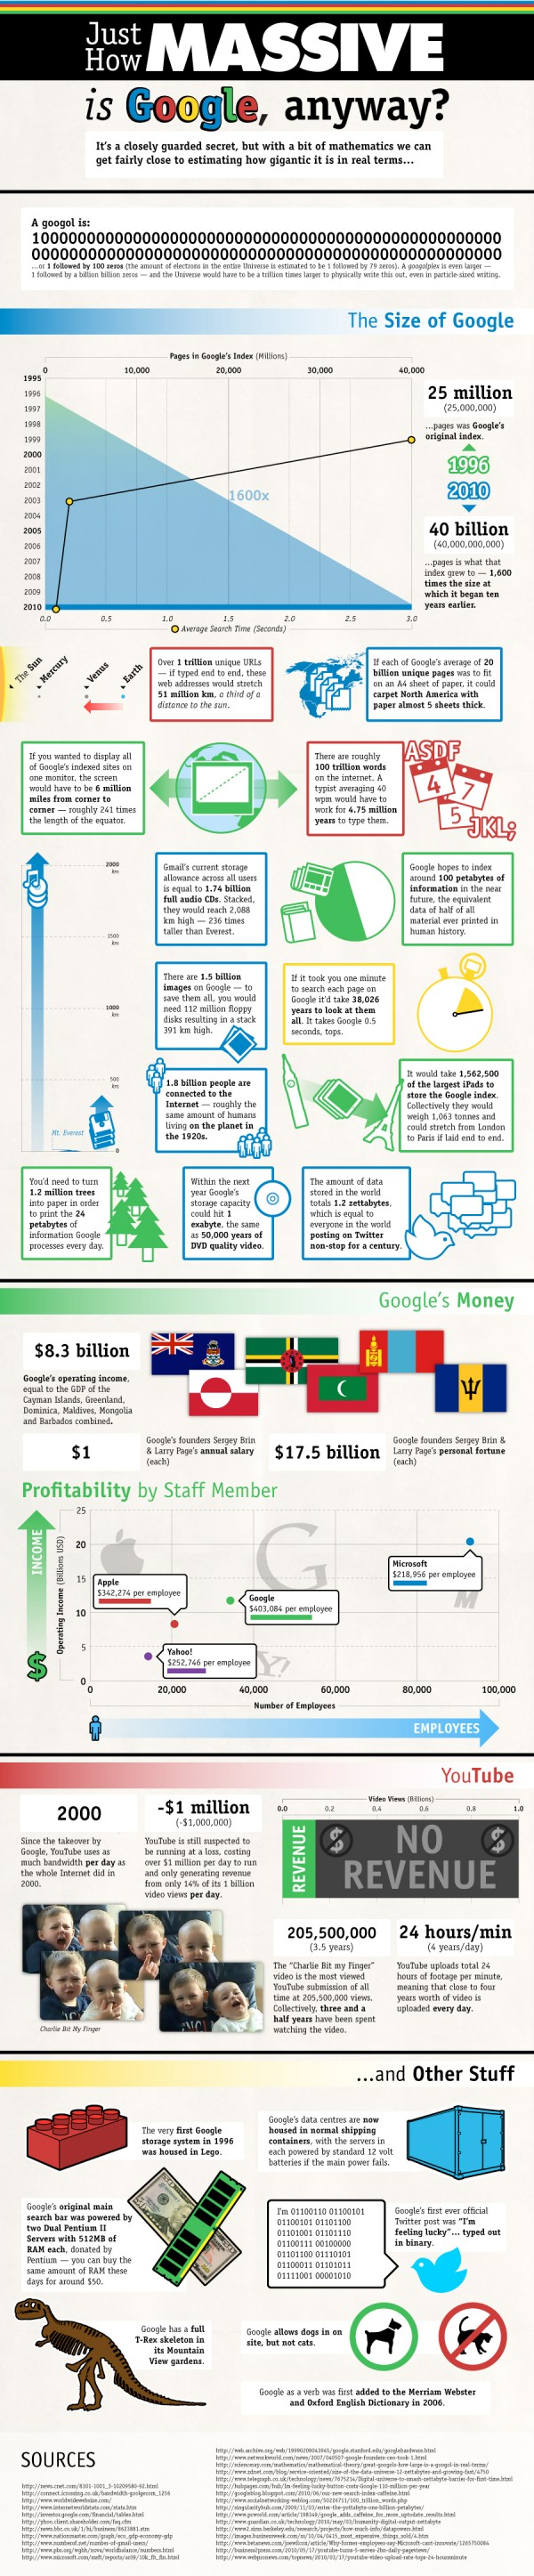 How Massive Is Google Anyway?